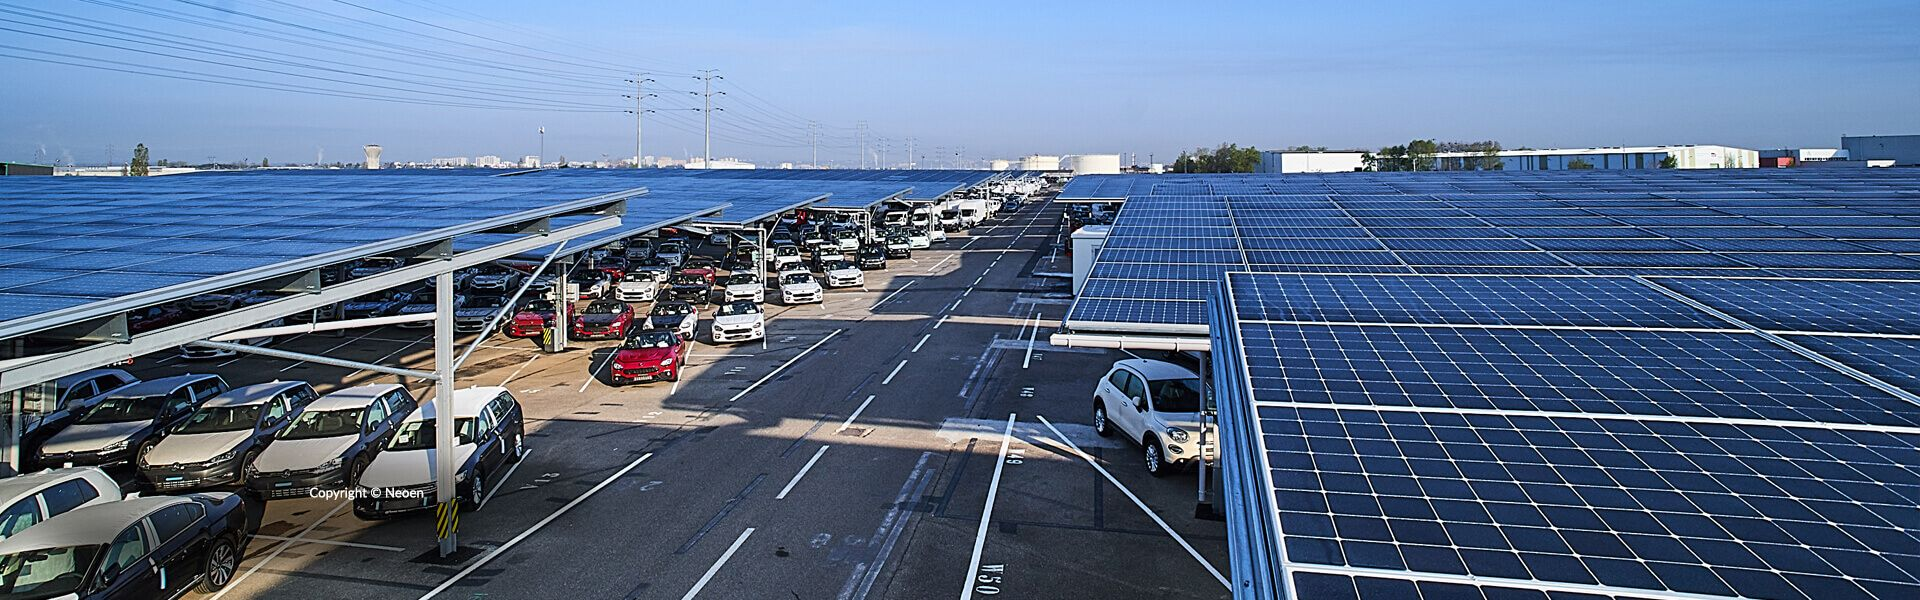 Largest Solar Carport Use Maxeon Solar Panels